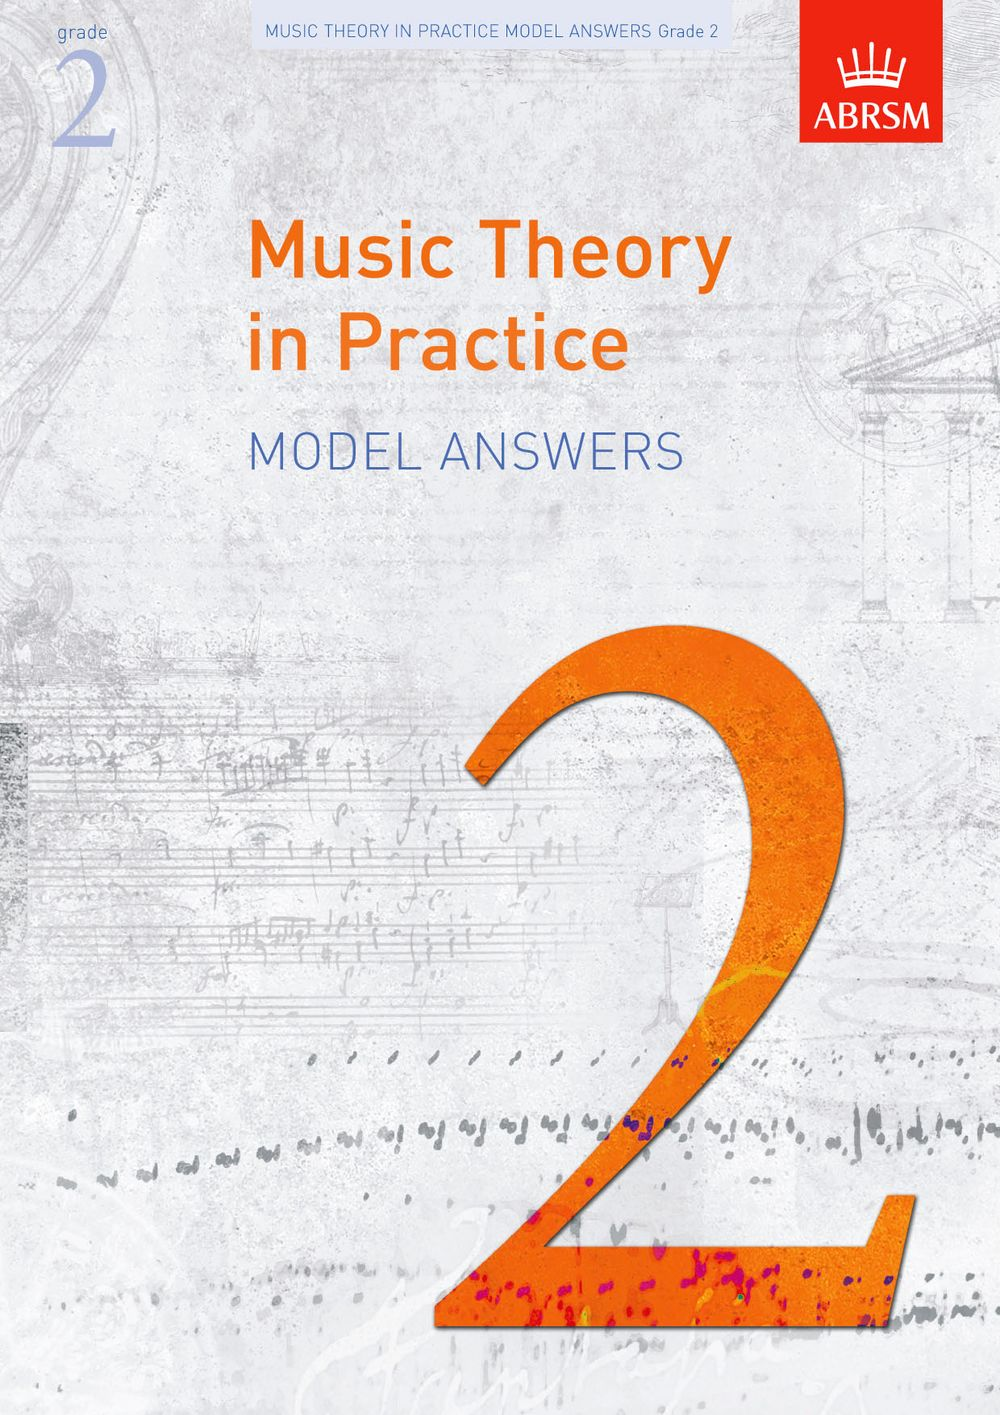 Music Theory in Practice Model Answers  Grade 2: Theory